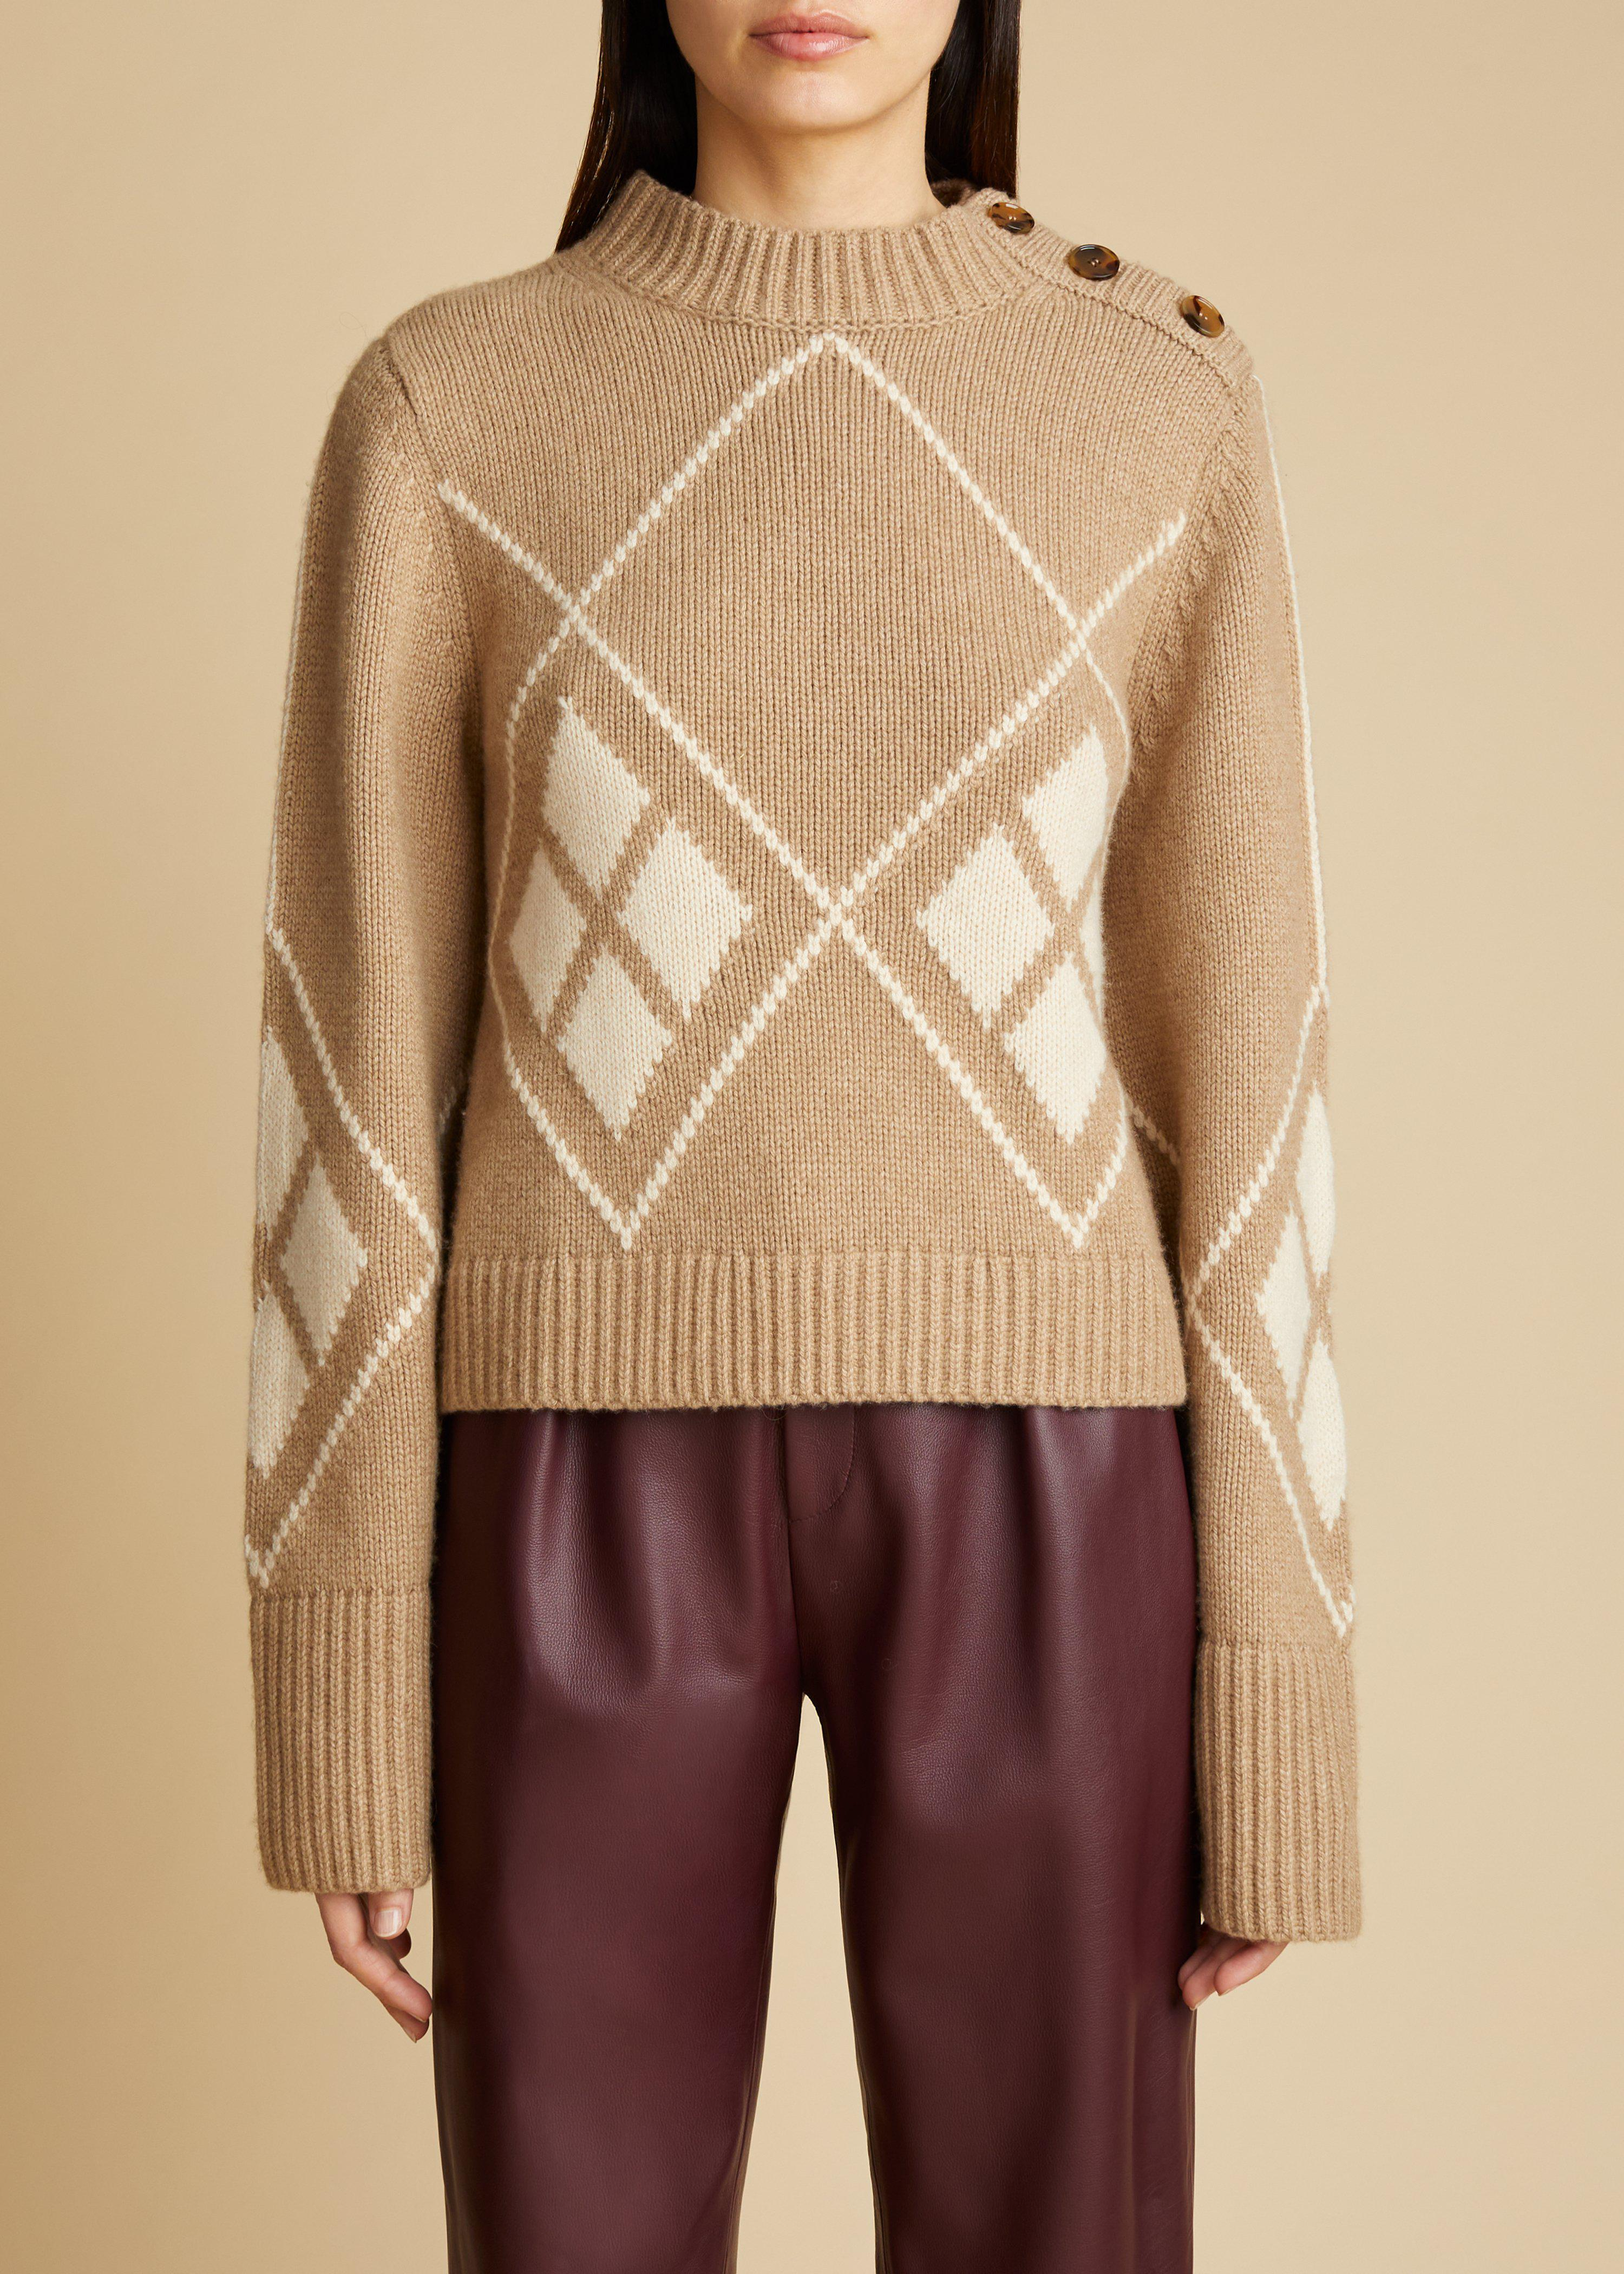 The Brie Sweater in Camel and Custard